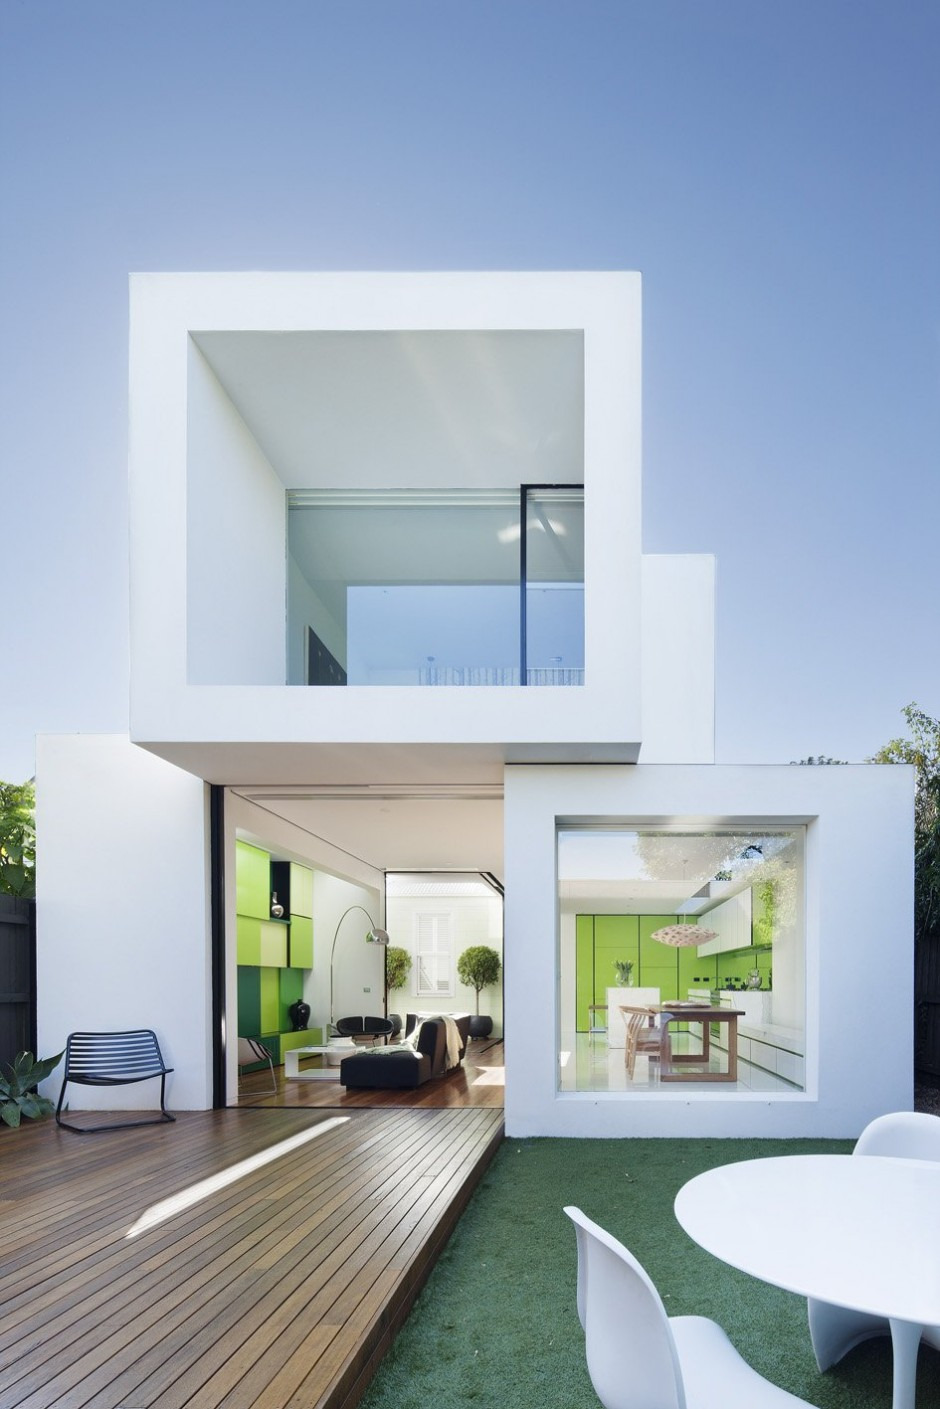 Small Minimalist House Design Lovely Small Minimalist Home with Creative Design Architecture Beast